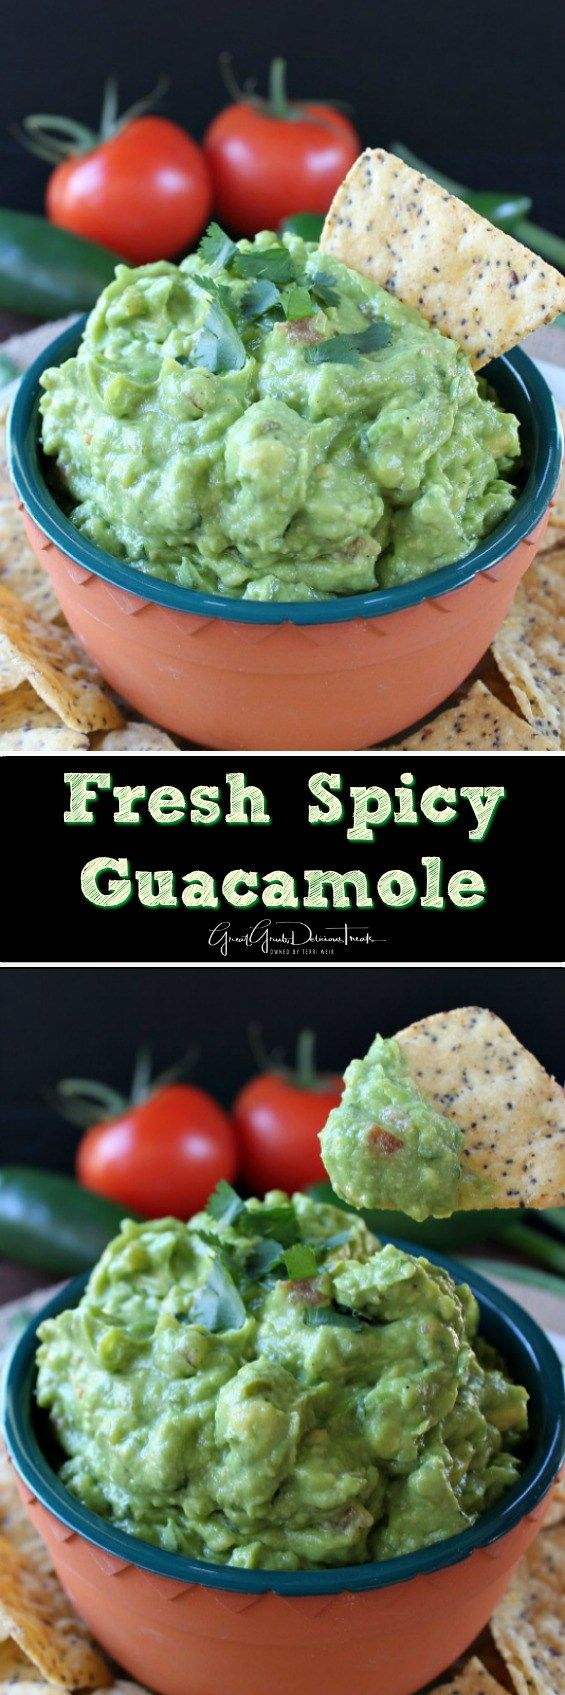 Fresh Spicy Guacamole - Here is an amazing vegan spicy guacamole recipe that tastes delicious and is on the healthy side. Made with the freshest ingredients